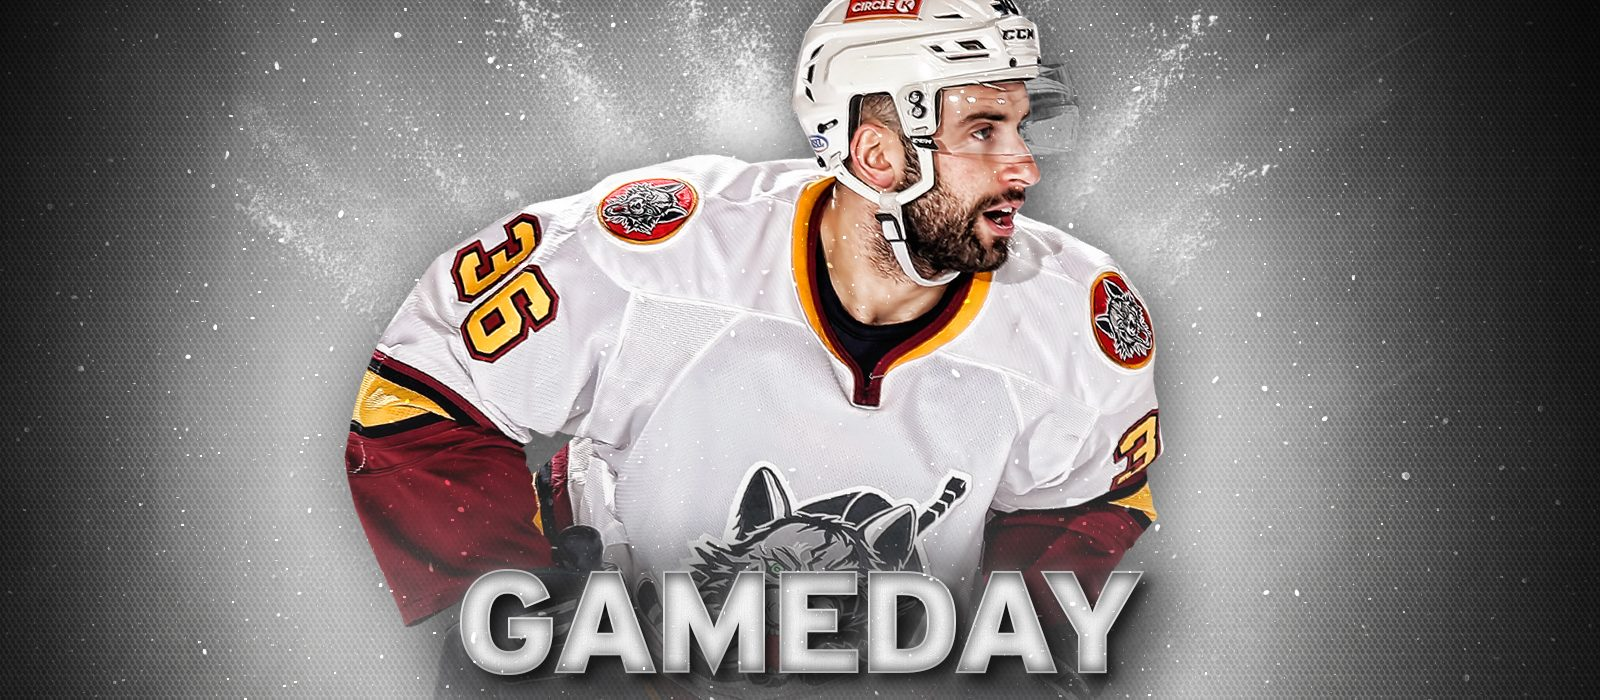 Chicago Wolves Milwaukee Admirals Gameday Dec. 26